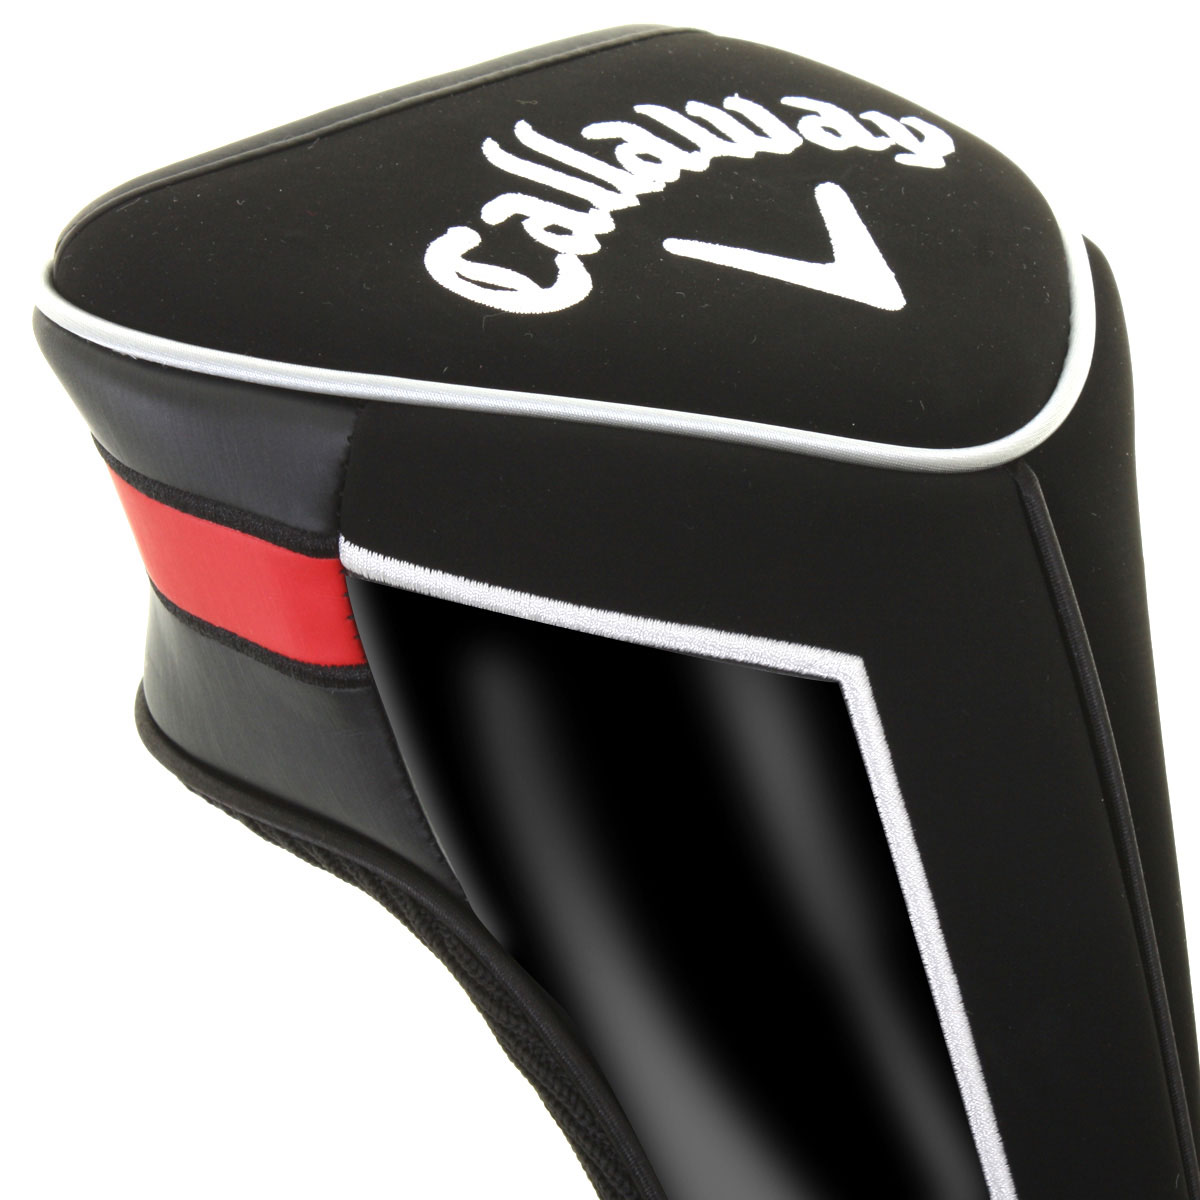 Callaway-Golf-Wood-Head-Covers-for-RAZR-Driver-Replacement-Headcov-OFF-RRP